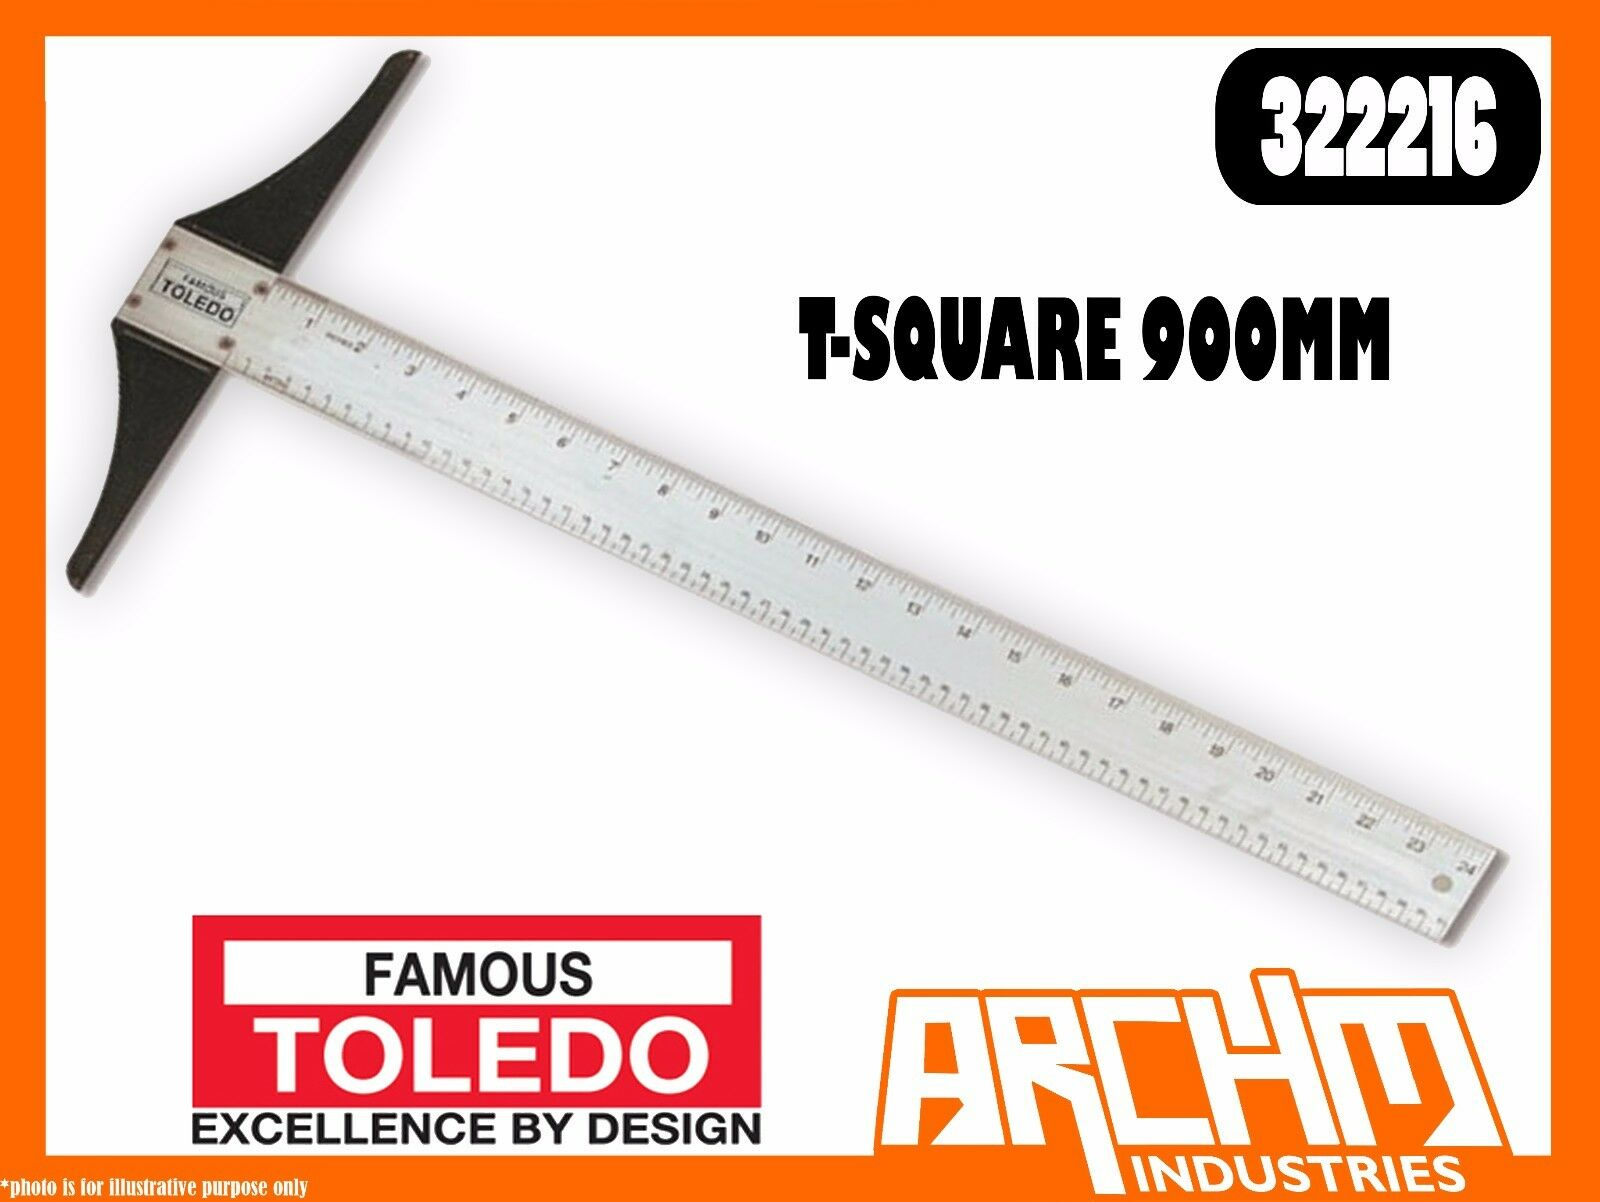 TOLEDO 322216 - T-SQAURE - 900MM - MEASURING TECHNICAL DRAWINGS ACCURATE